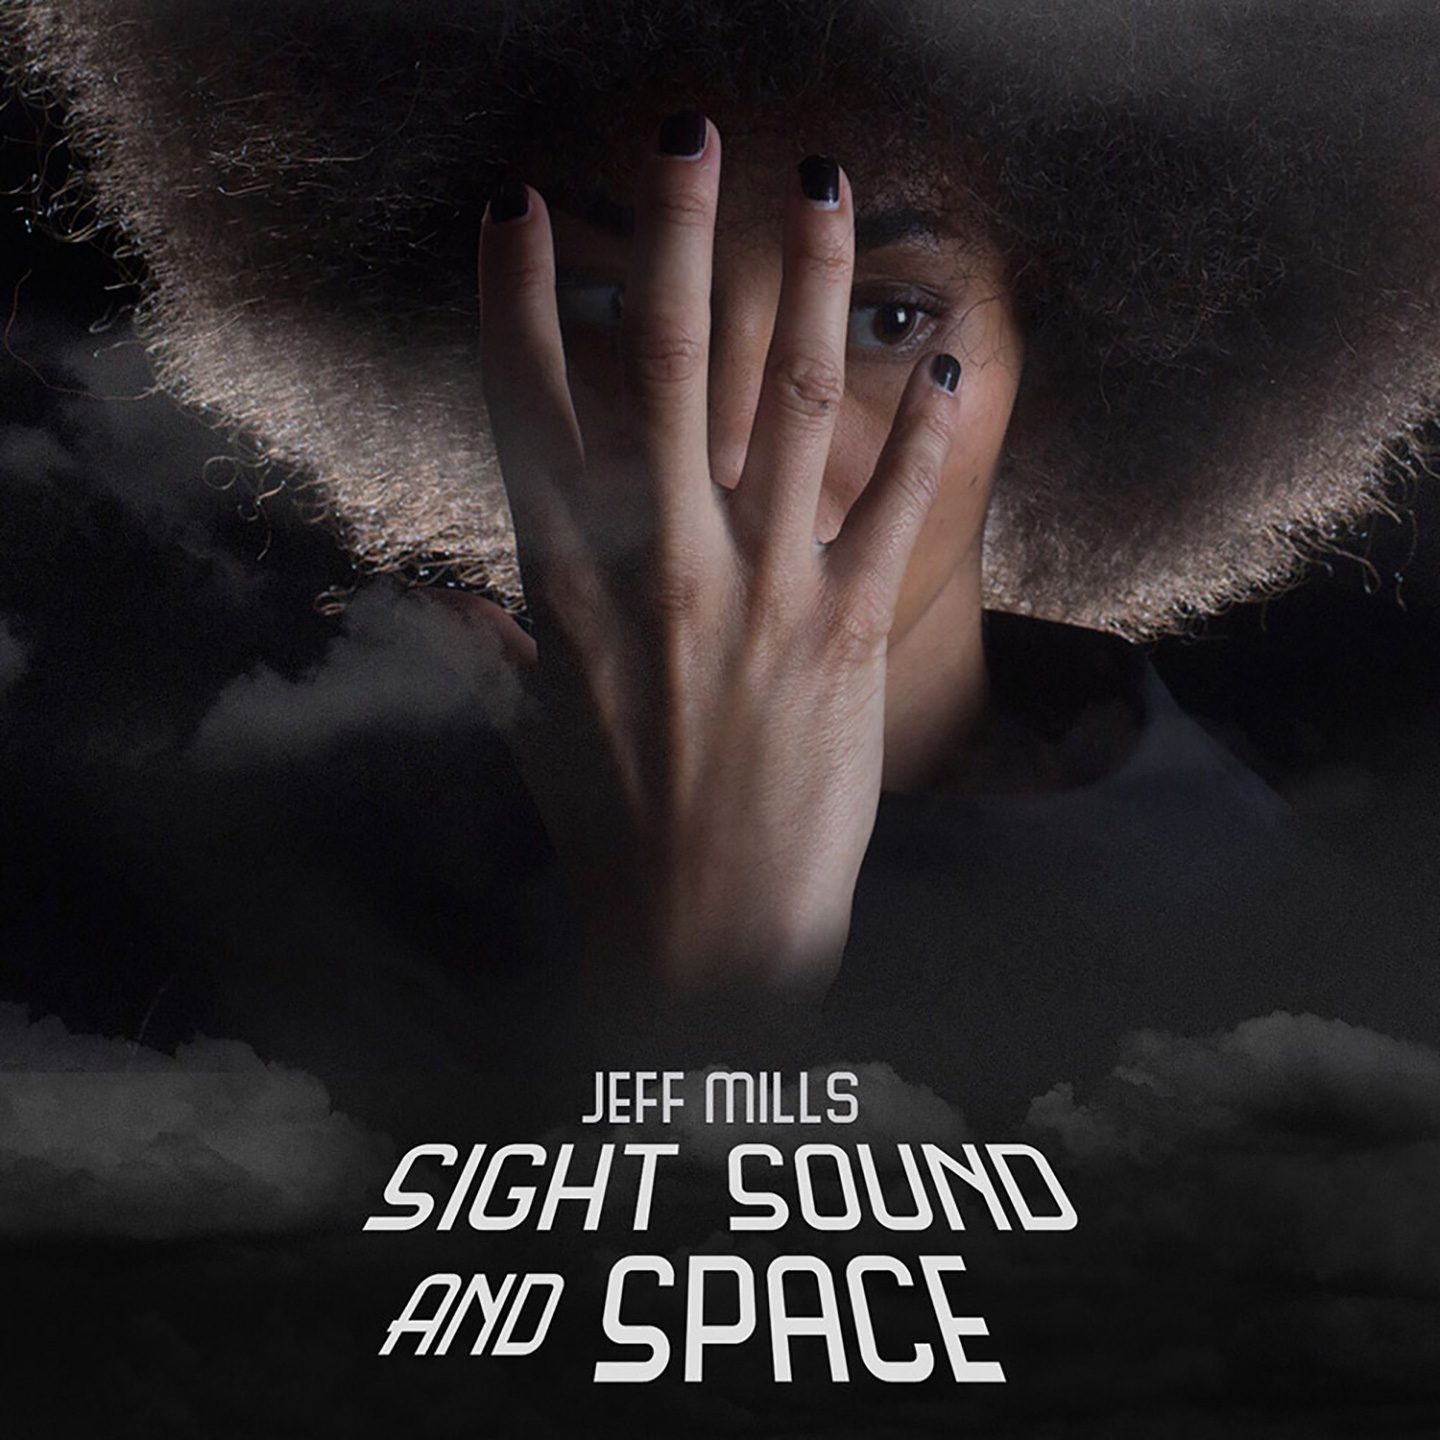 Jeff Mills - Sight Sound And Space